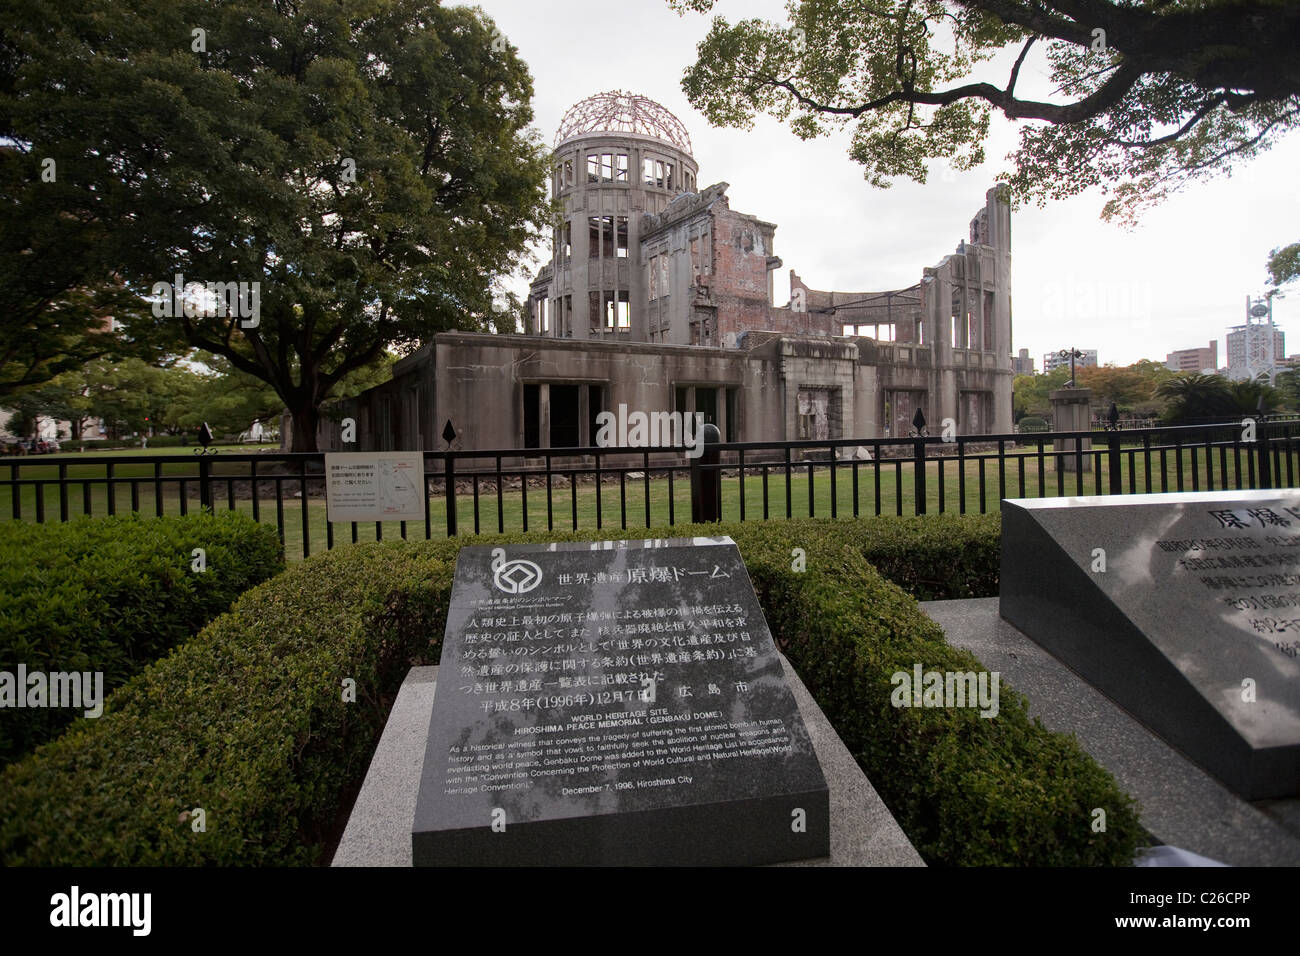 Genbaku Dome (Atomic Bomb Dome) with World Heritage Site plaque in foreground. Stock Photo